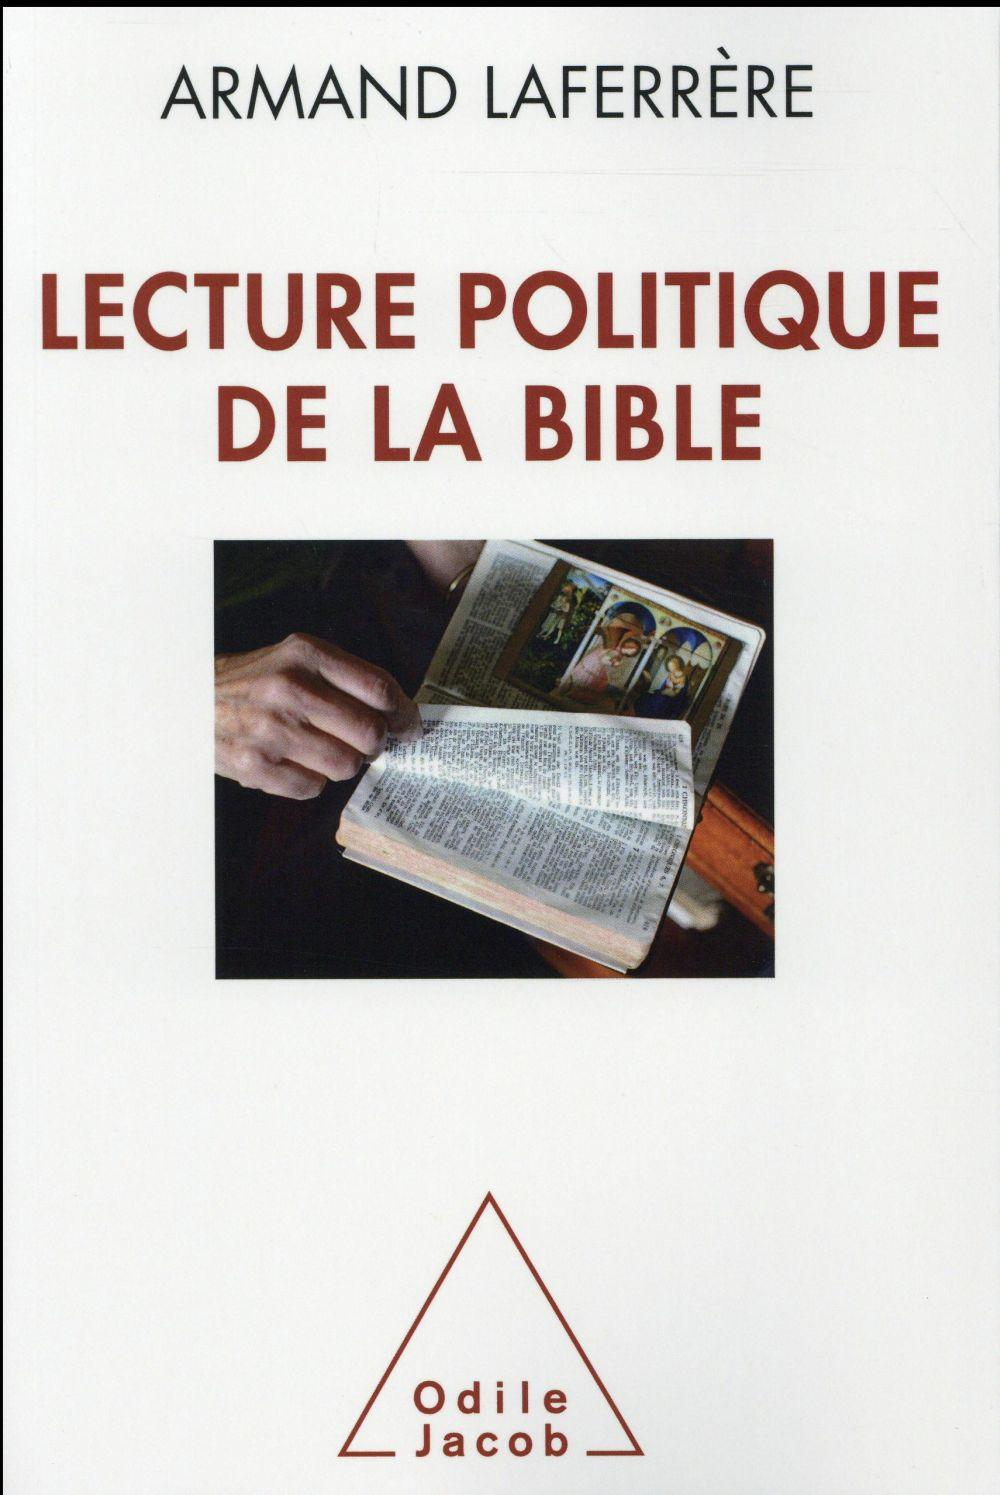 Lecture politique de la Bible  - Armand Laferrere